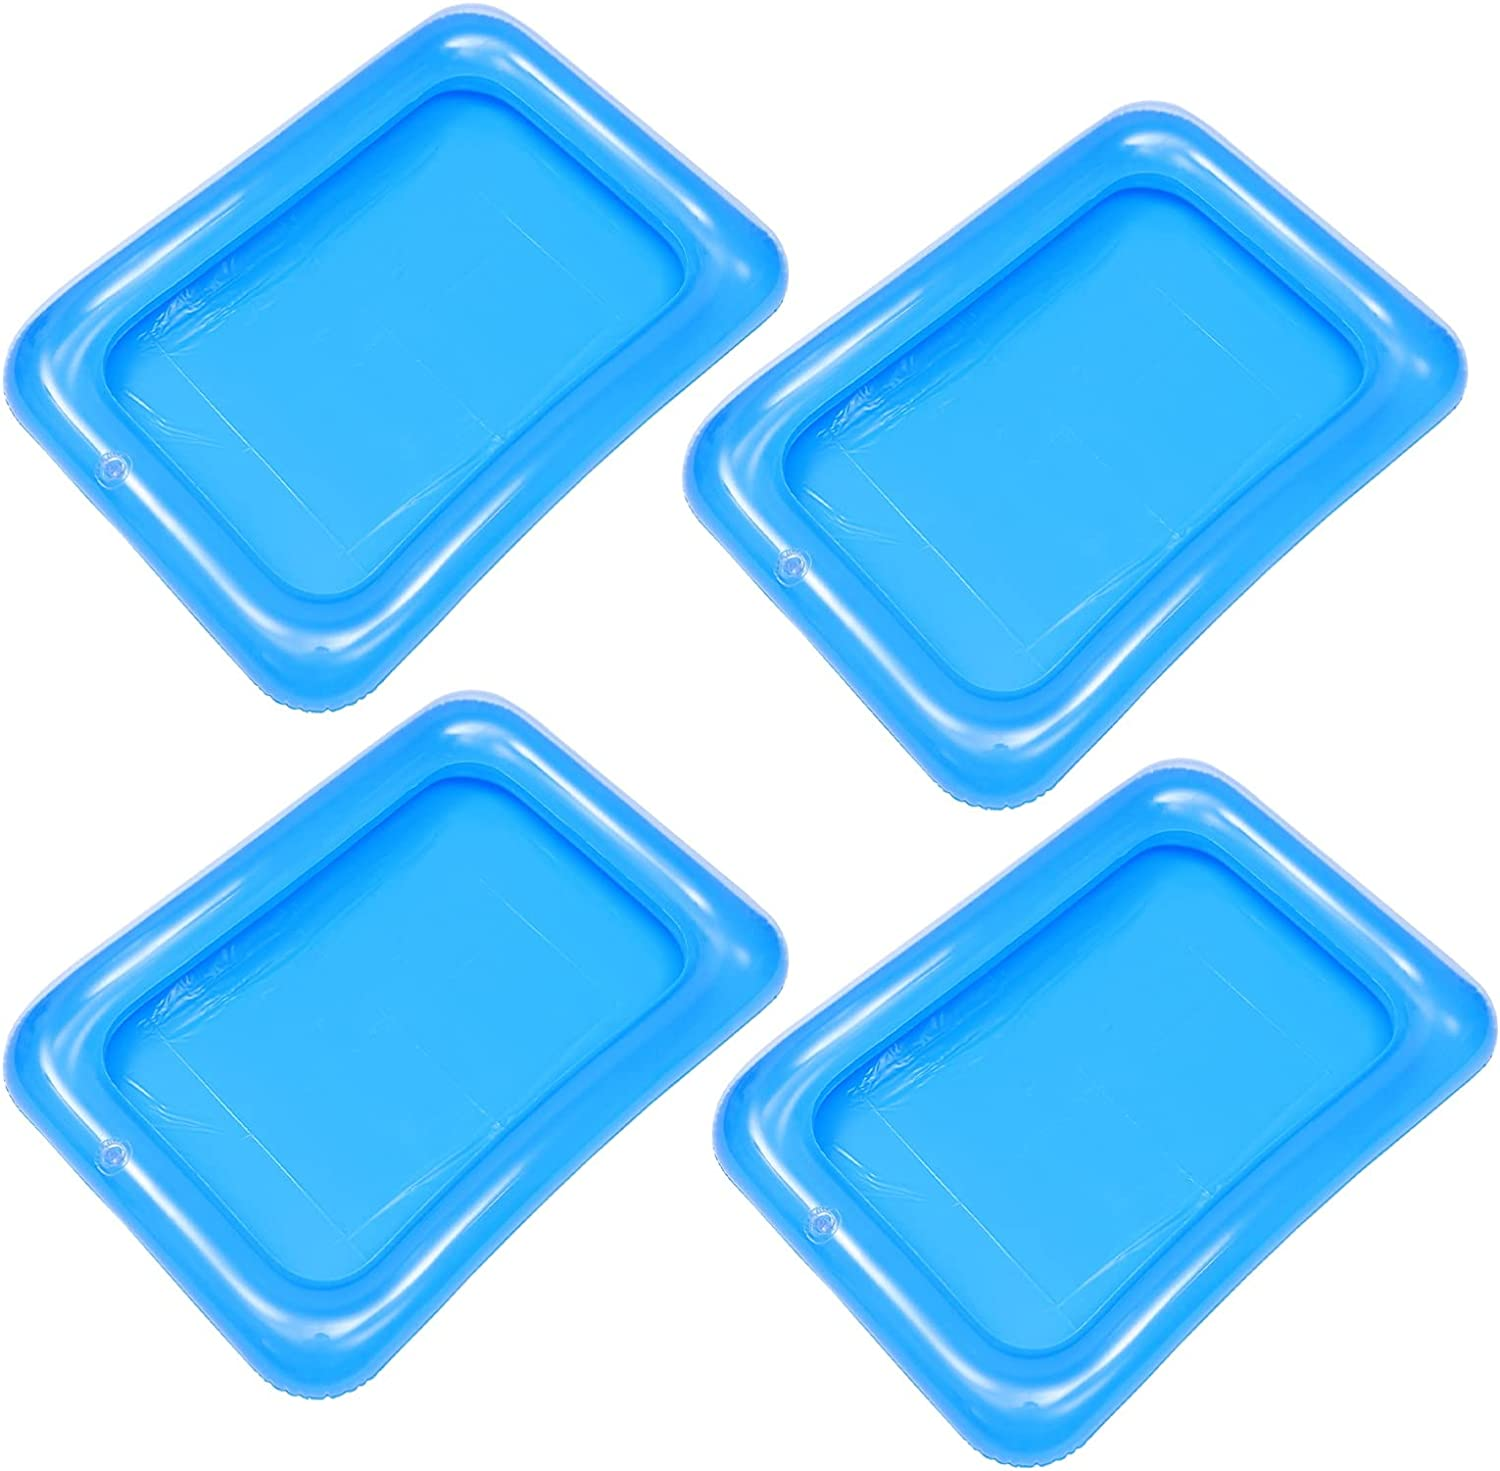 DOITOOL 4Pcs Inflatable Ice Serving Bar Coolers for Parties, PVC Ice Serving Trays Food Drink Holder Cooler, Salad Picnic Ice Drinks Buffet Server Tray for Indoor Outdoor Party Pool